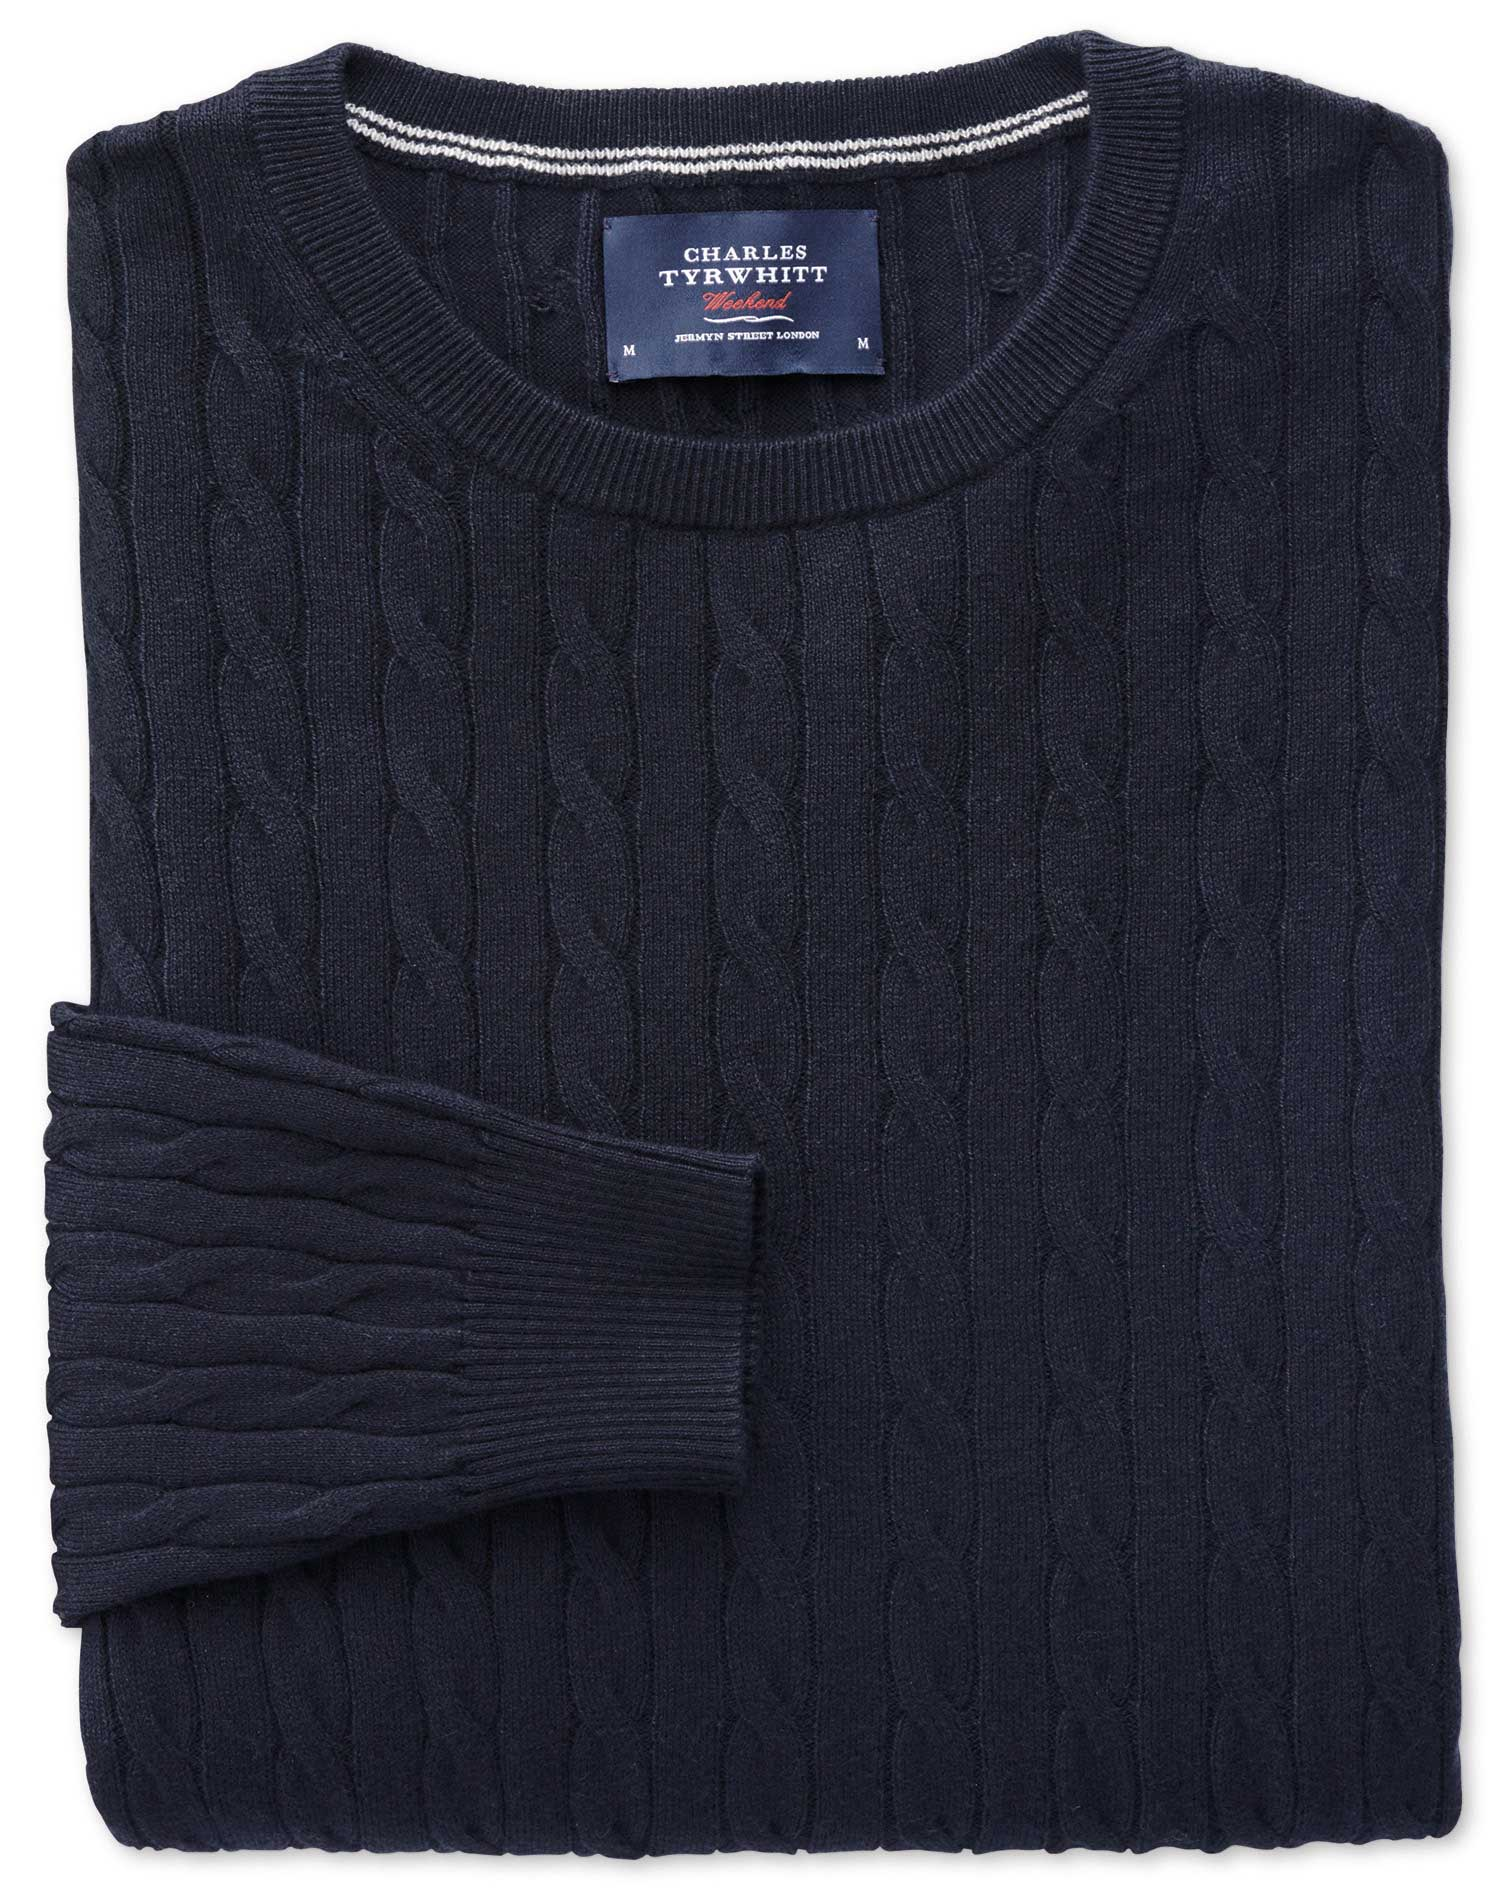 Navy Cotton Cashmere Cable Crew Neck Jumper Size XL by Charles Tyrwhitt